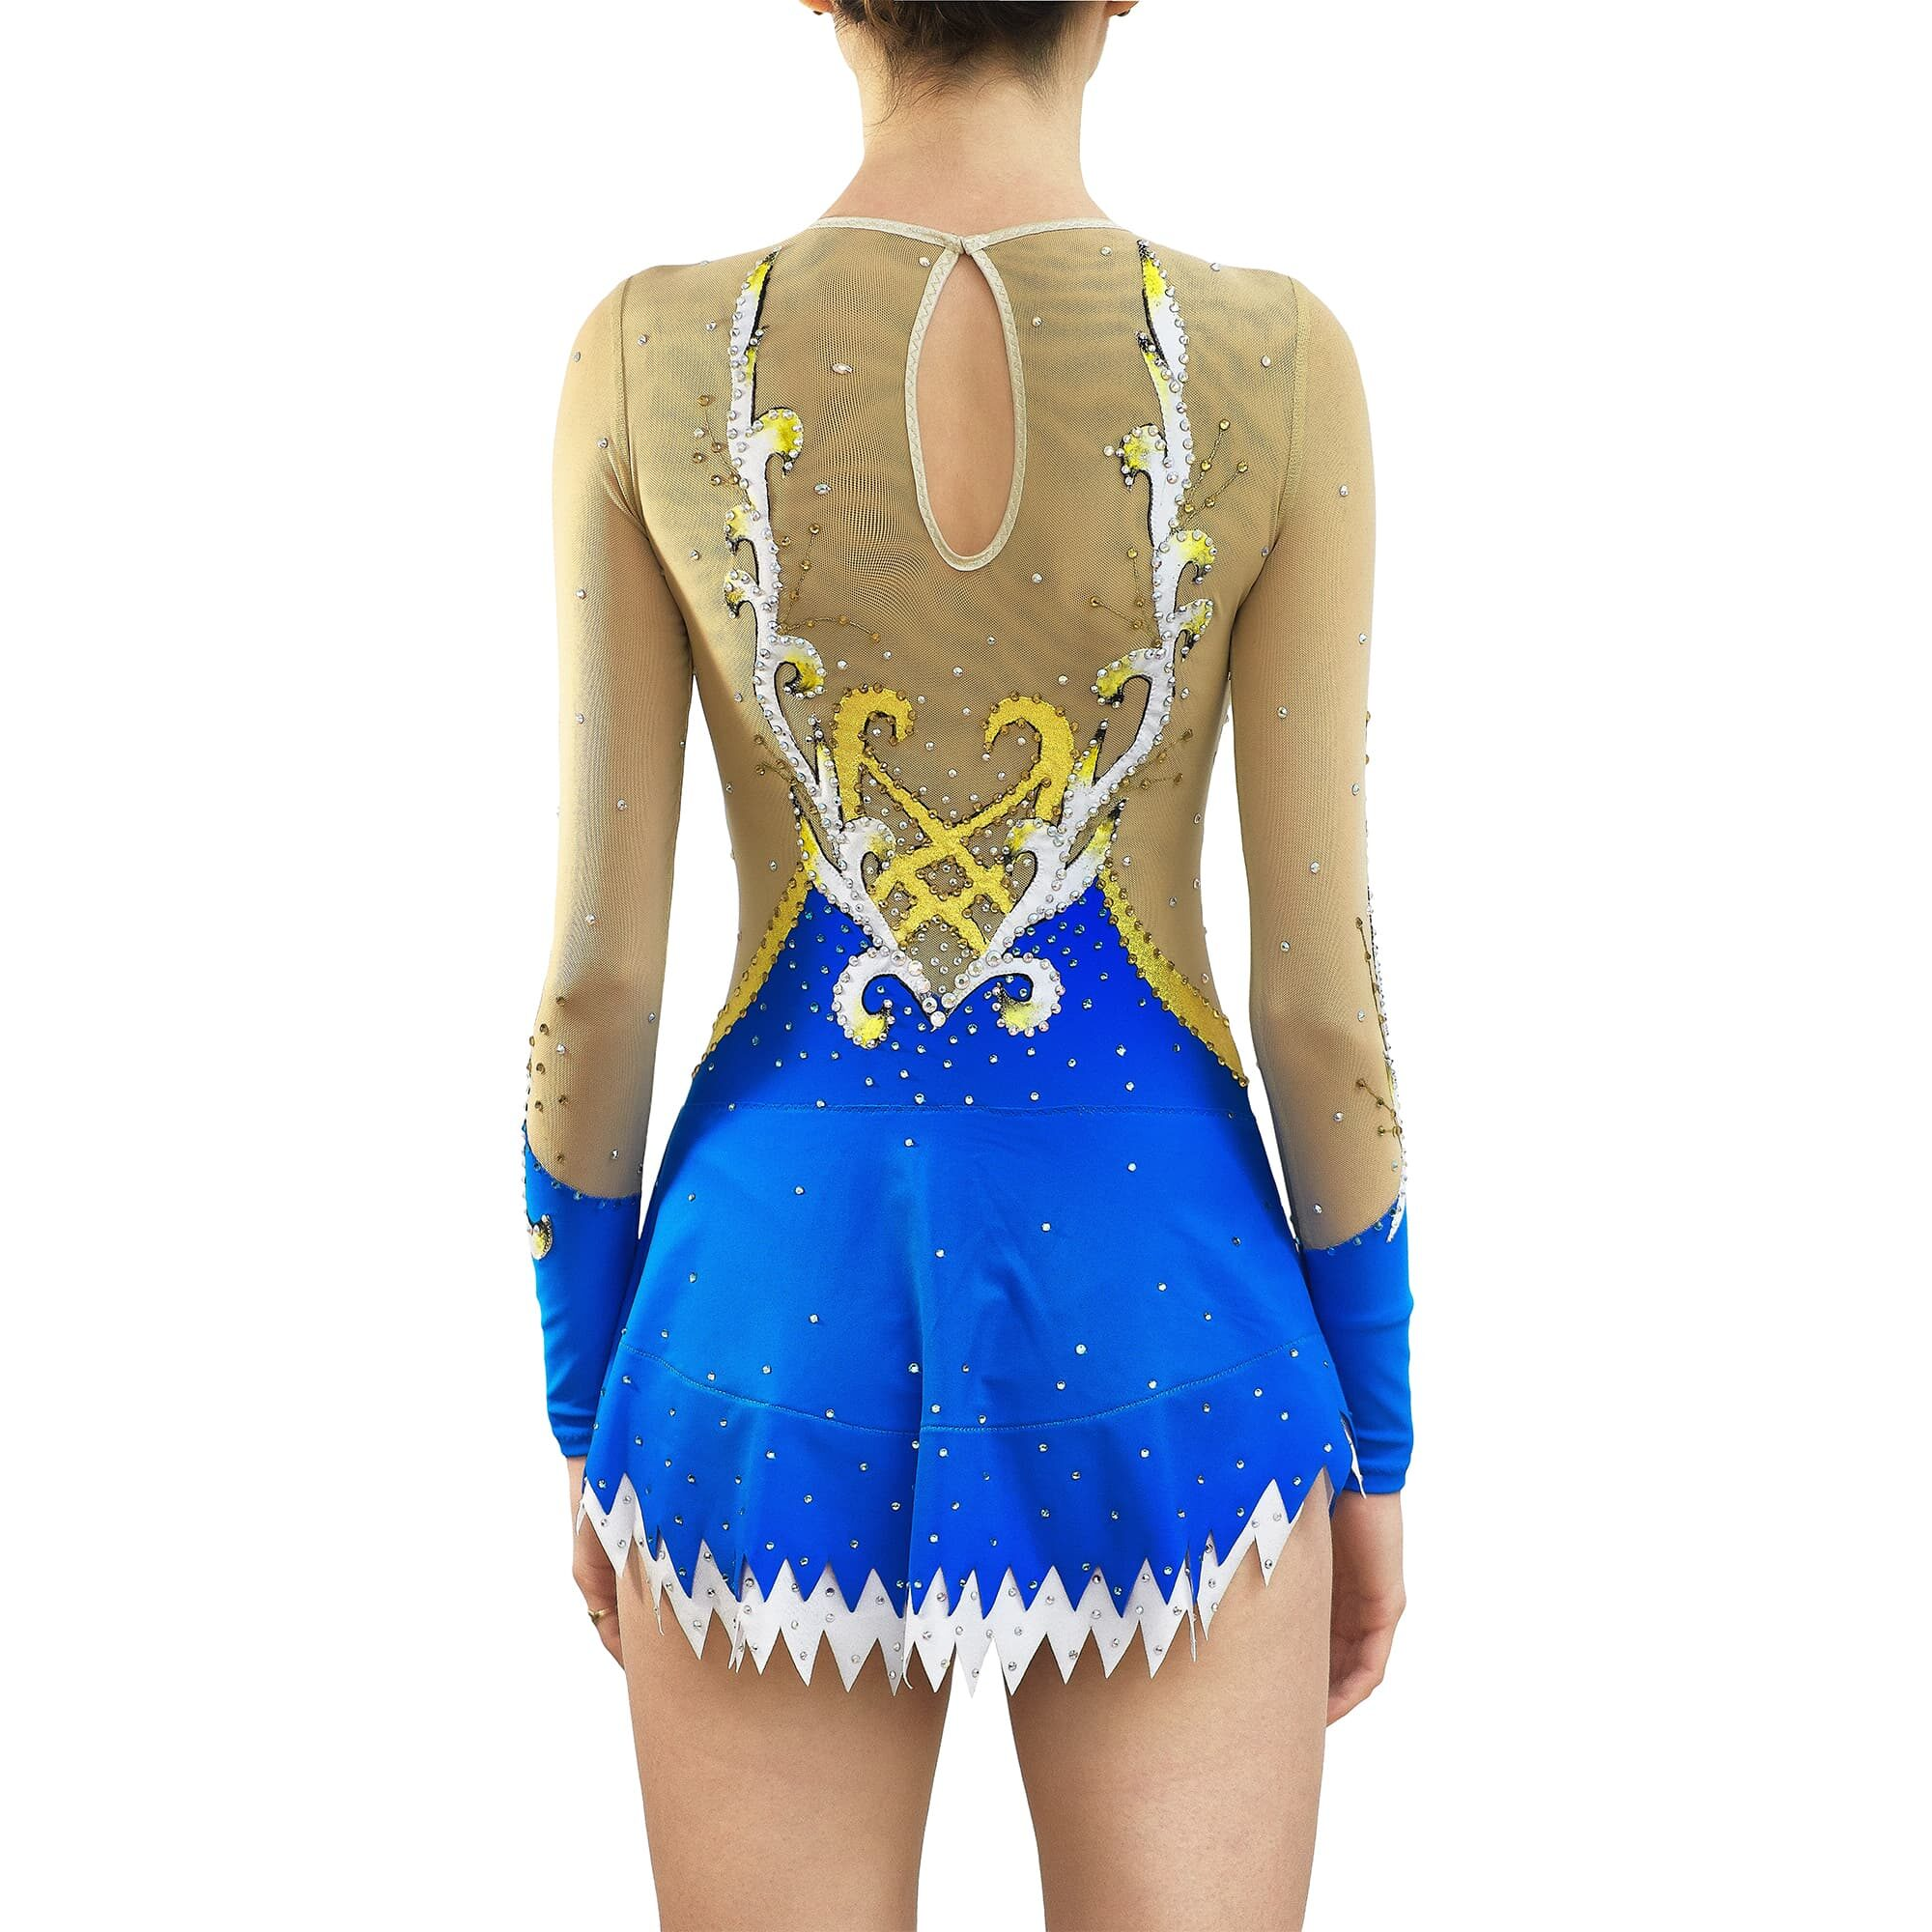 Royal blue, white, gold, mesh Rhythmic Gymnastics Leotard 236 for competitions